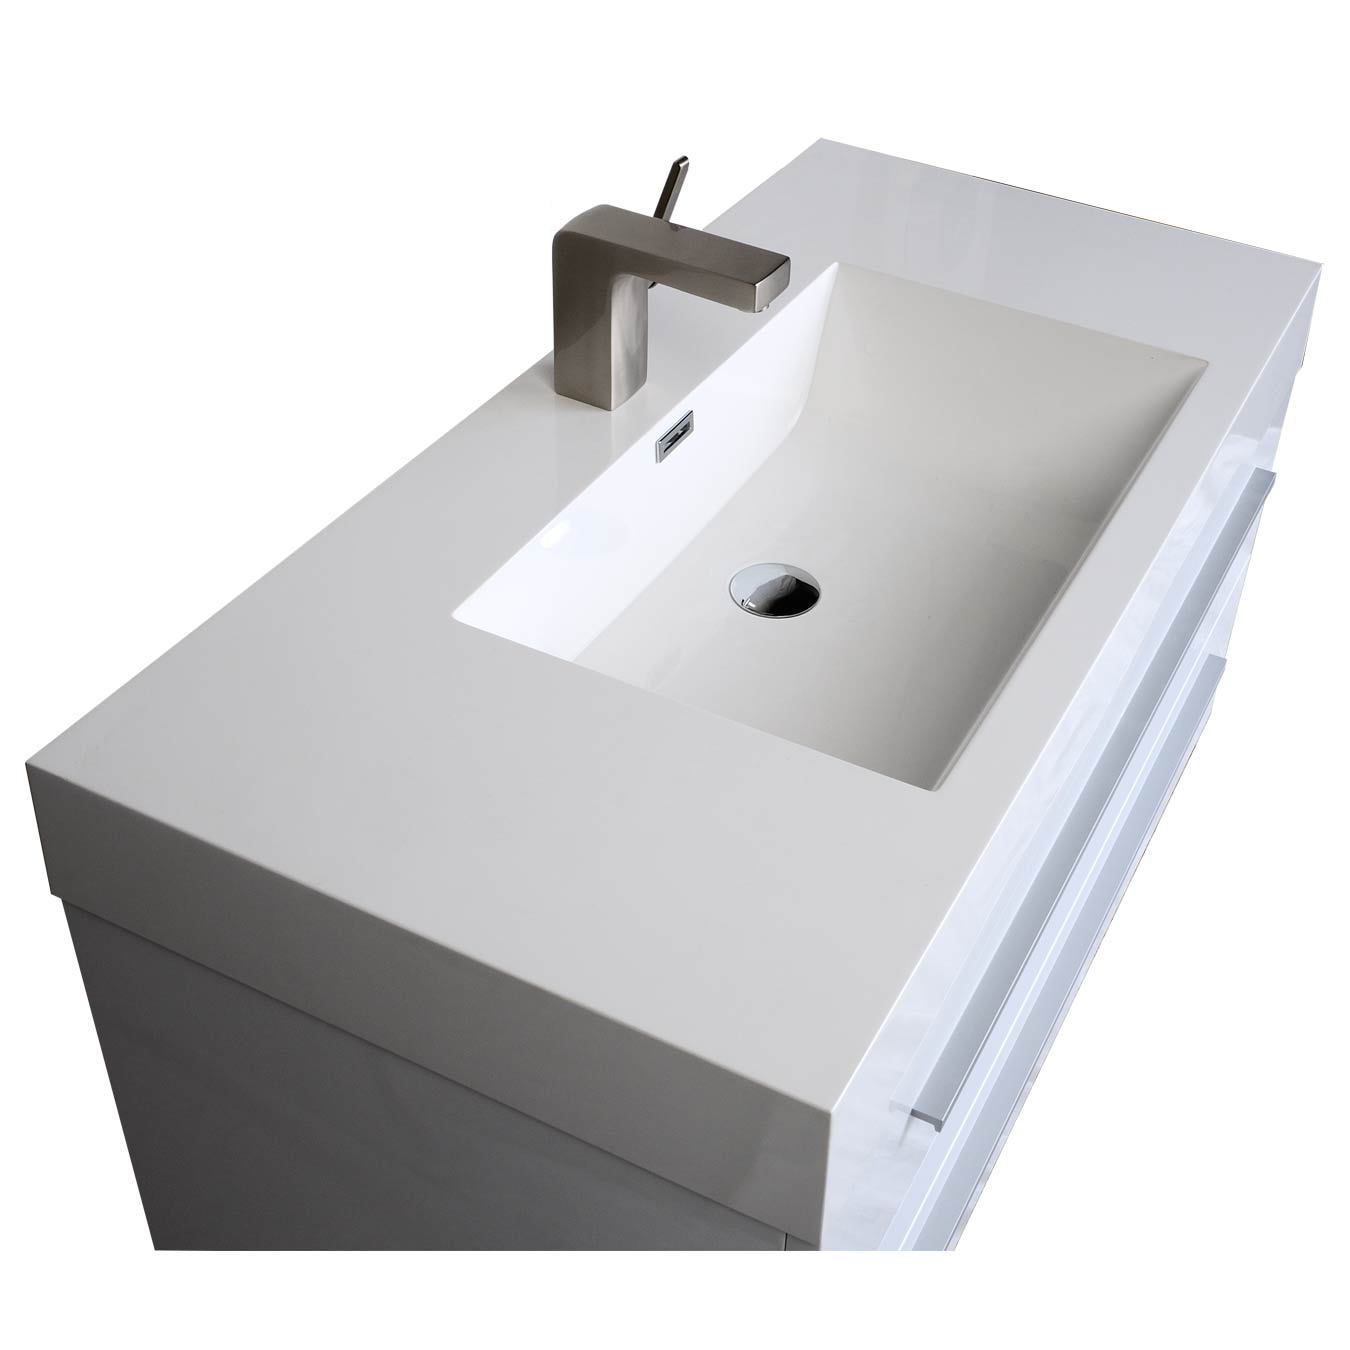 Exceptionnel 35.5 In. Wall Mount Modern Bathroom Vanity In High Gloss White TN M900 HGW